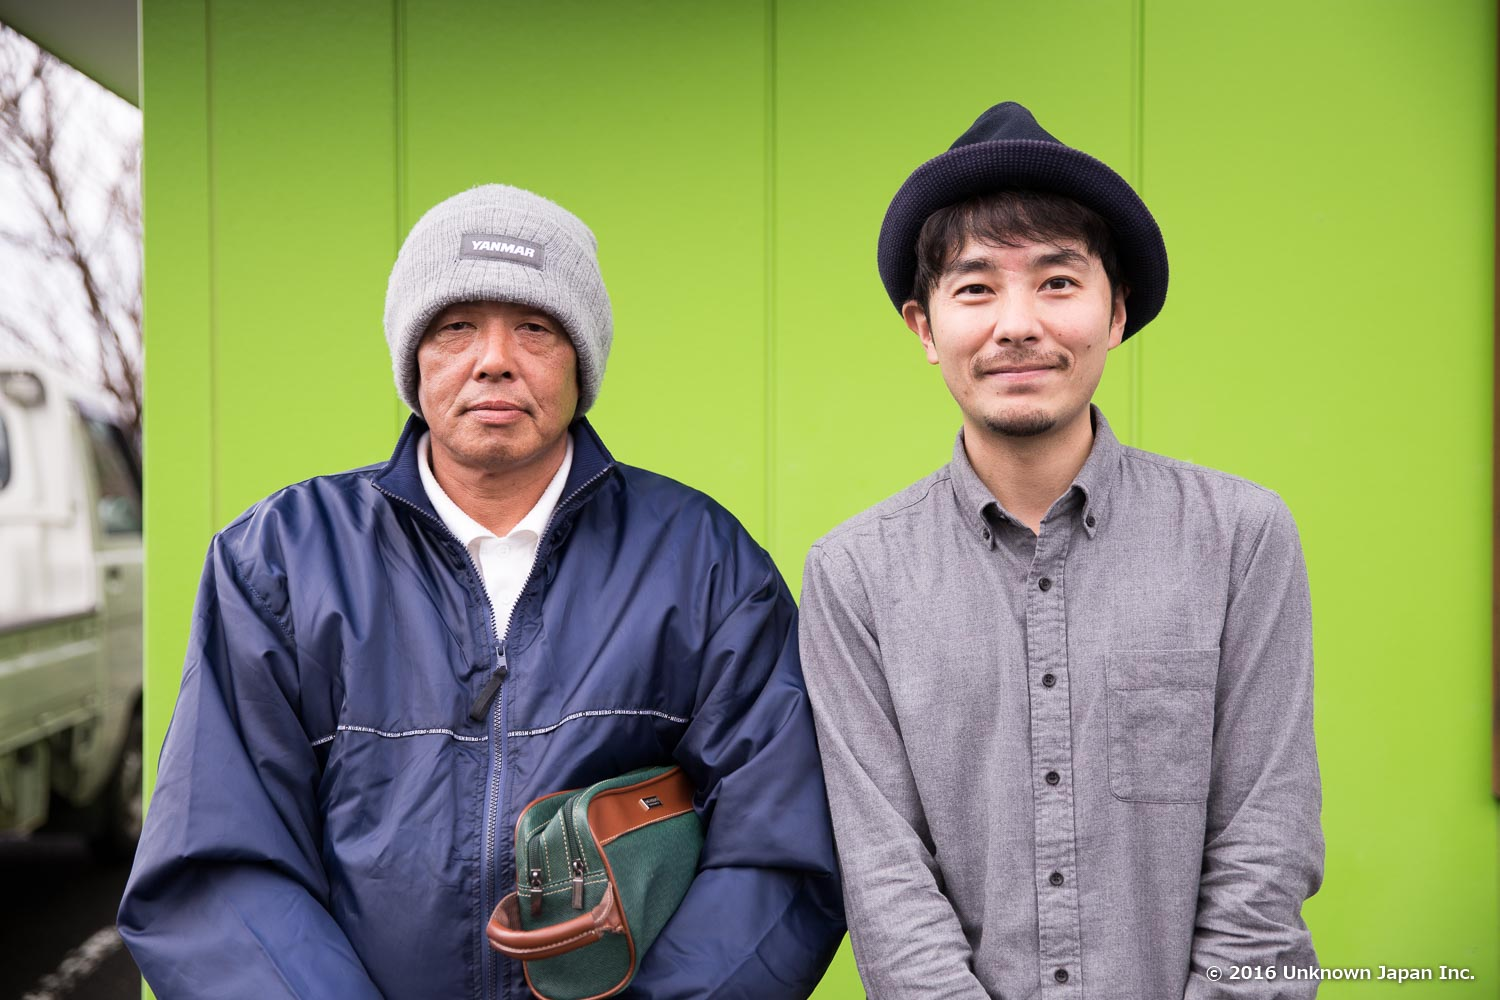 With the 3rd-generation owner  Akinobu Yamaguchi , in front of the building